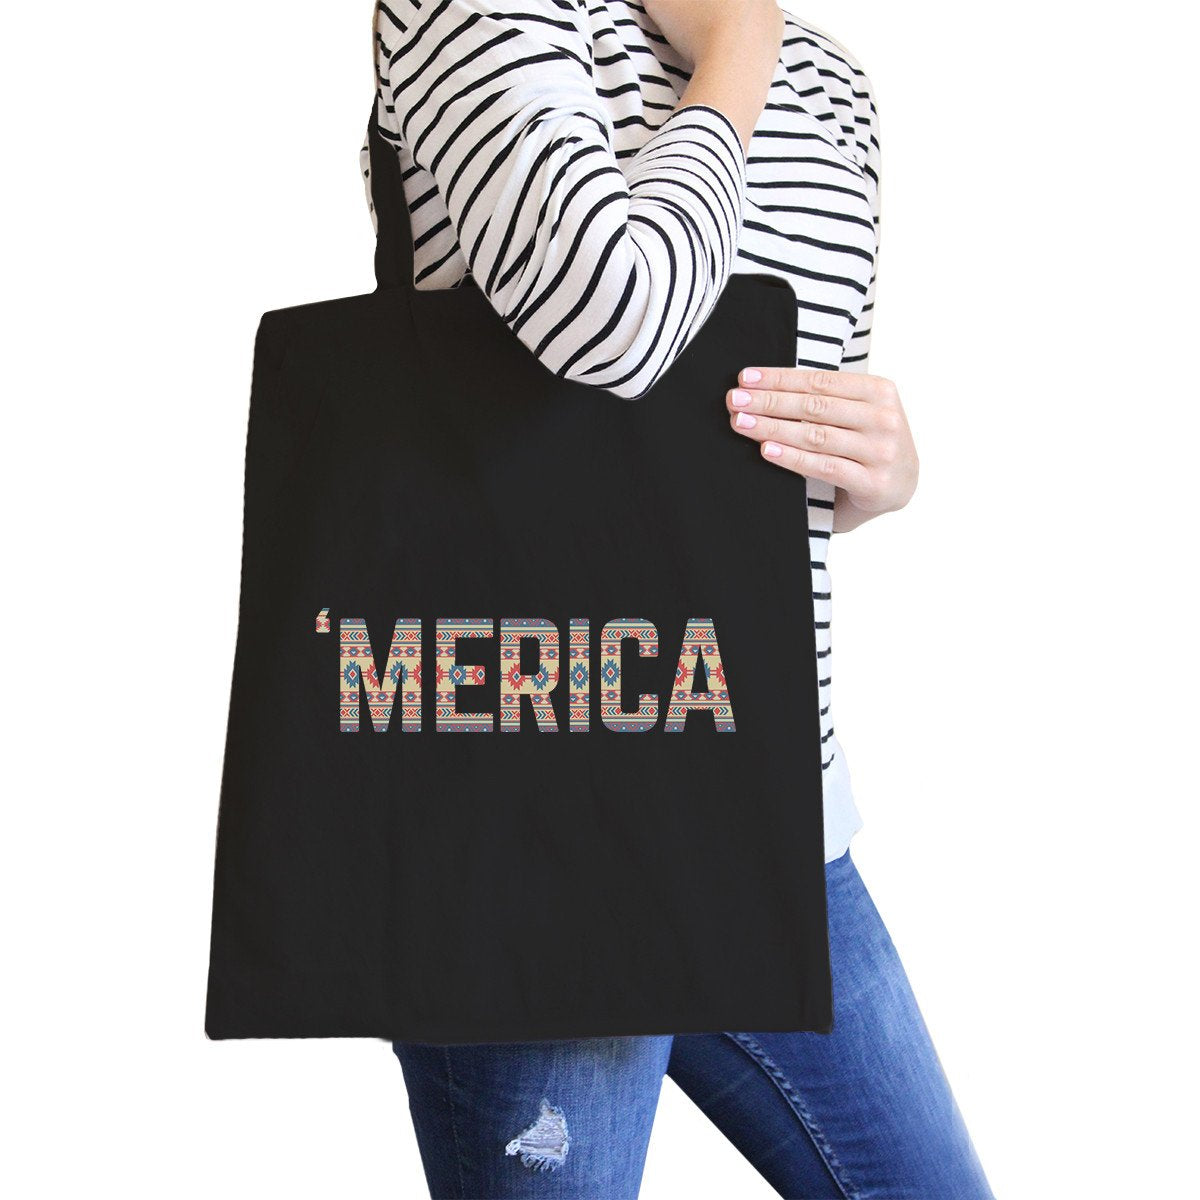 With 'merica Black Canvas Bag Tribal Pattern America Lettering Bag